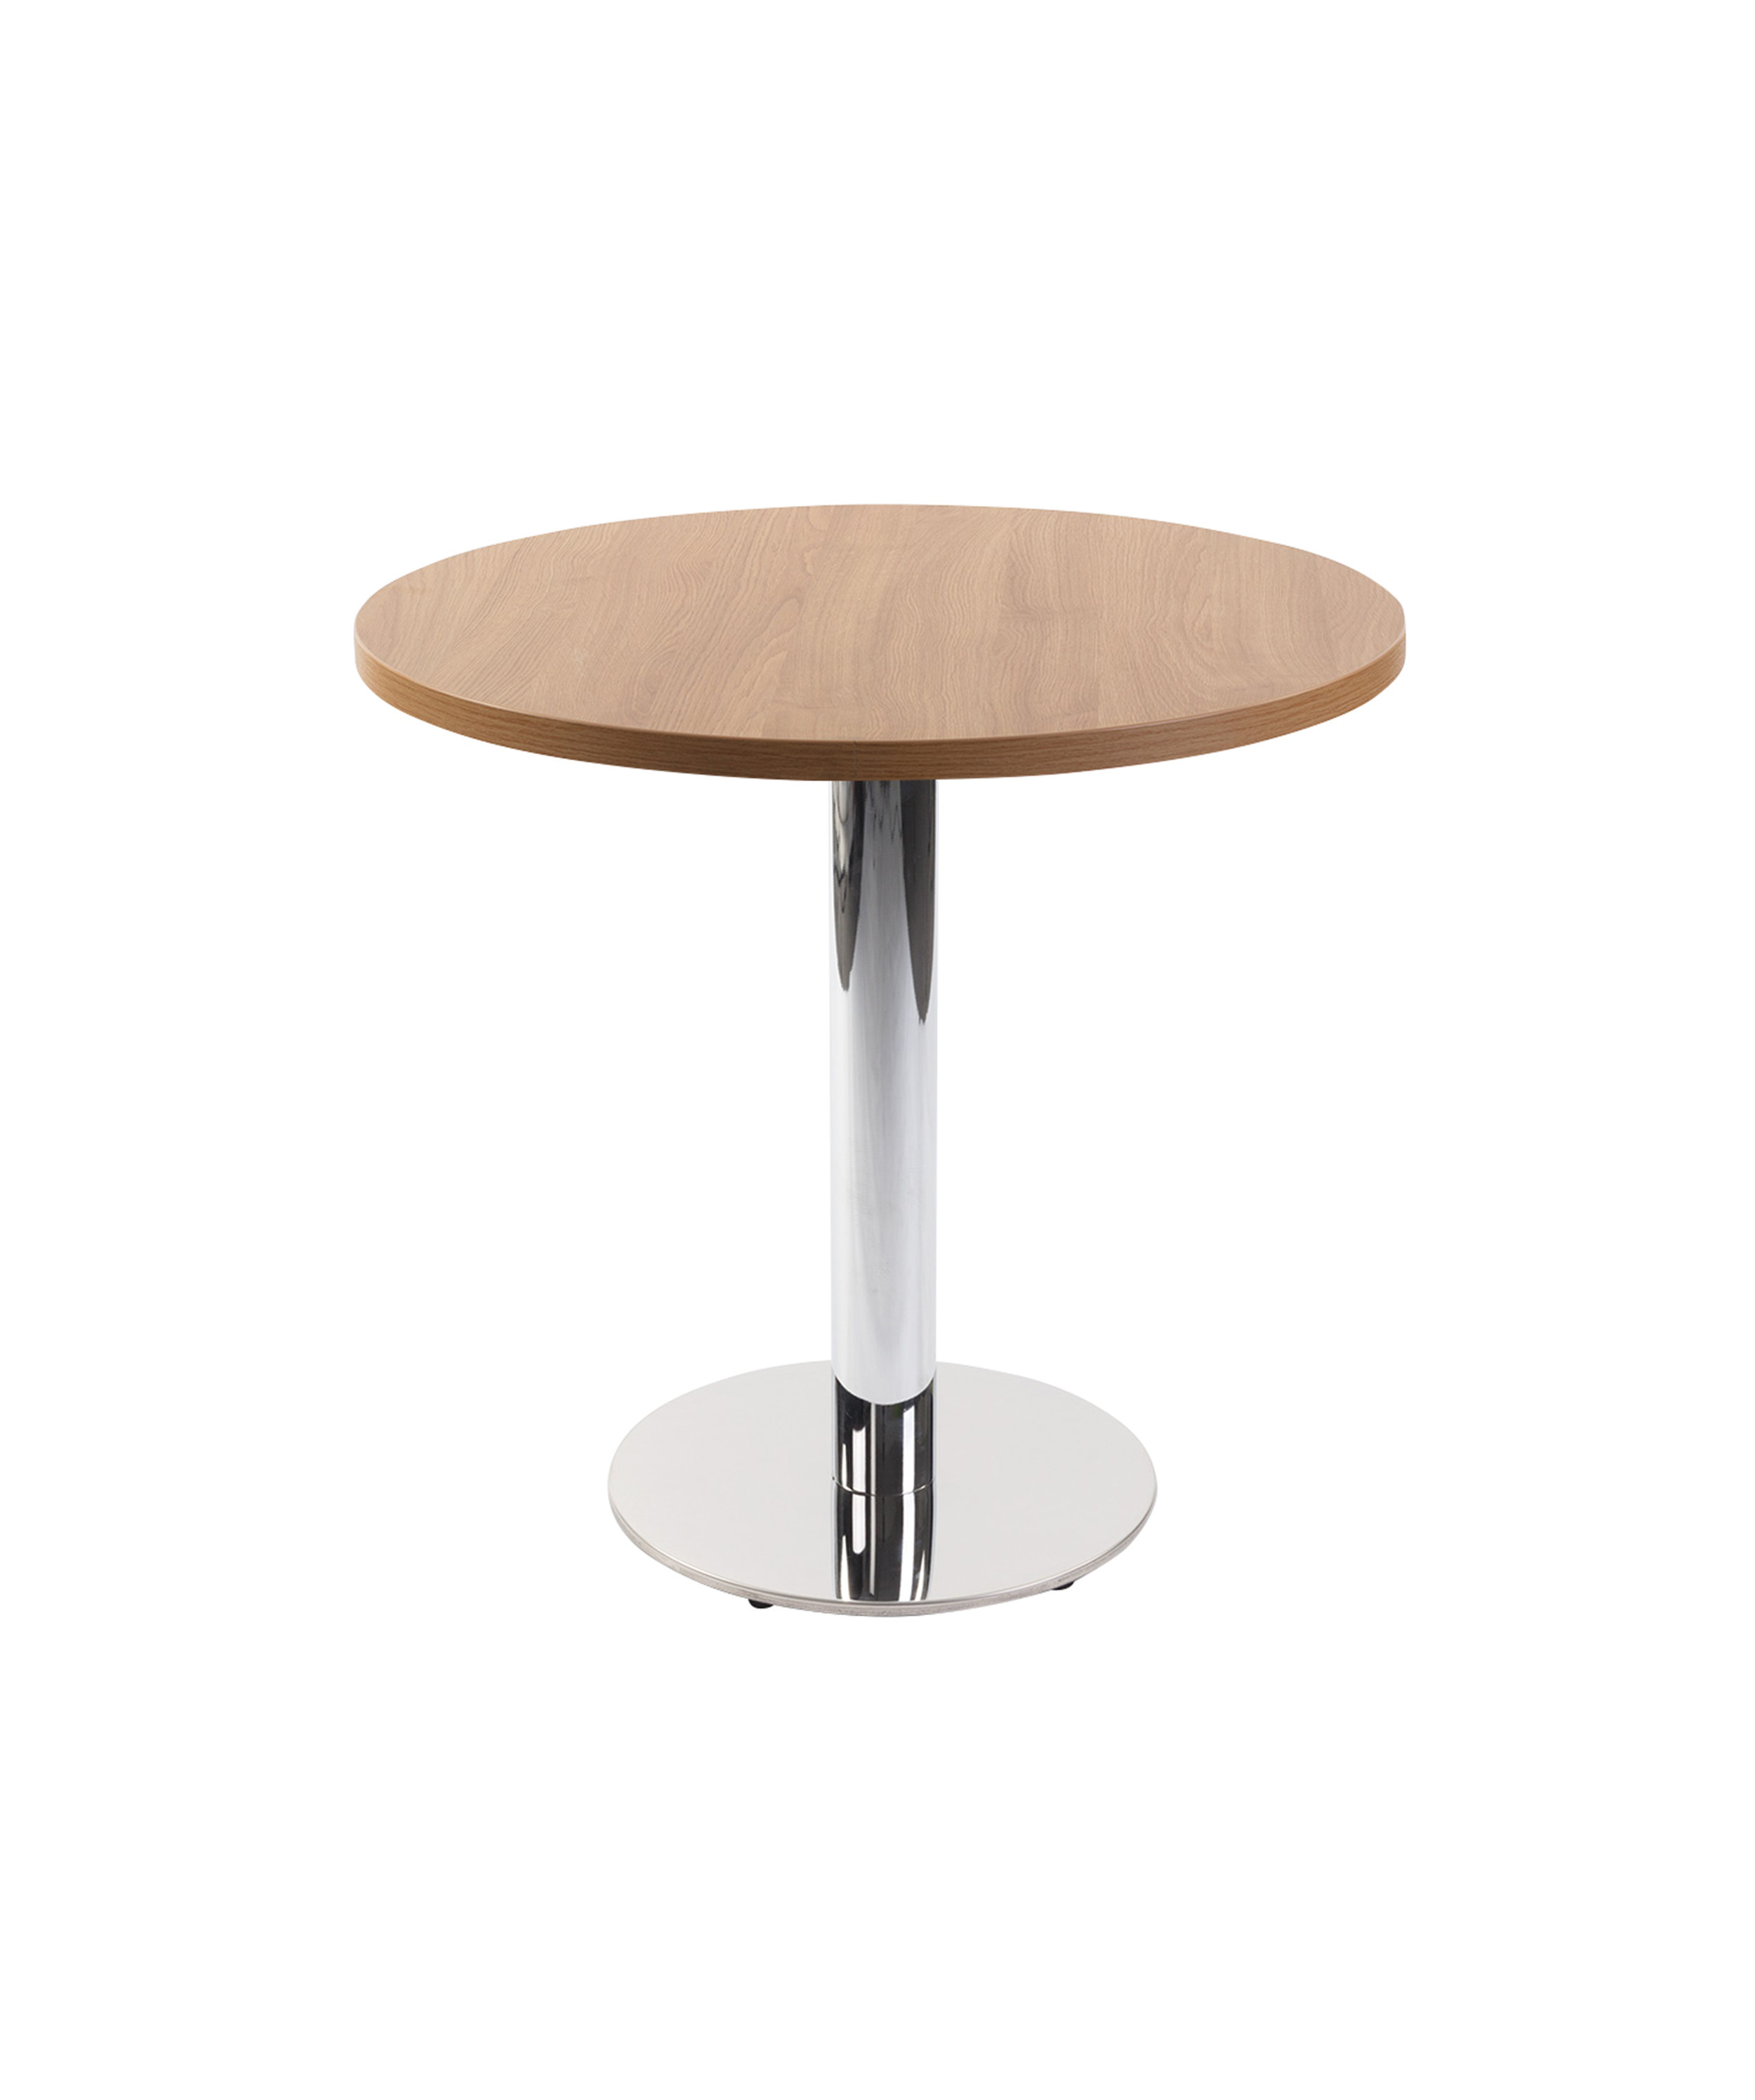 Lustra round with round oak top.jpg